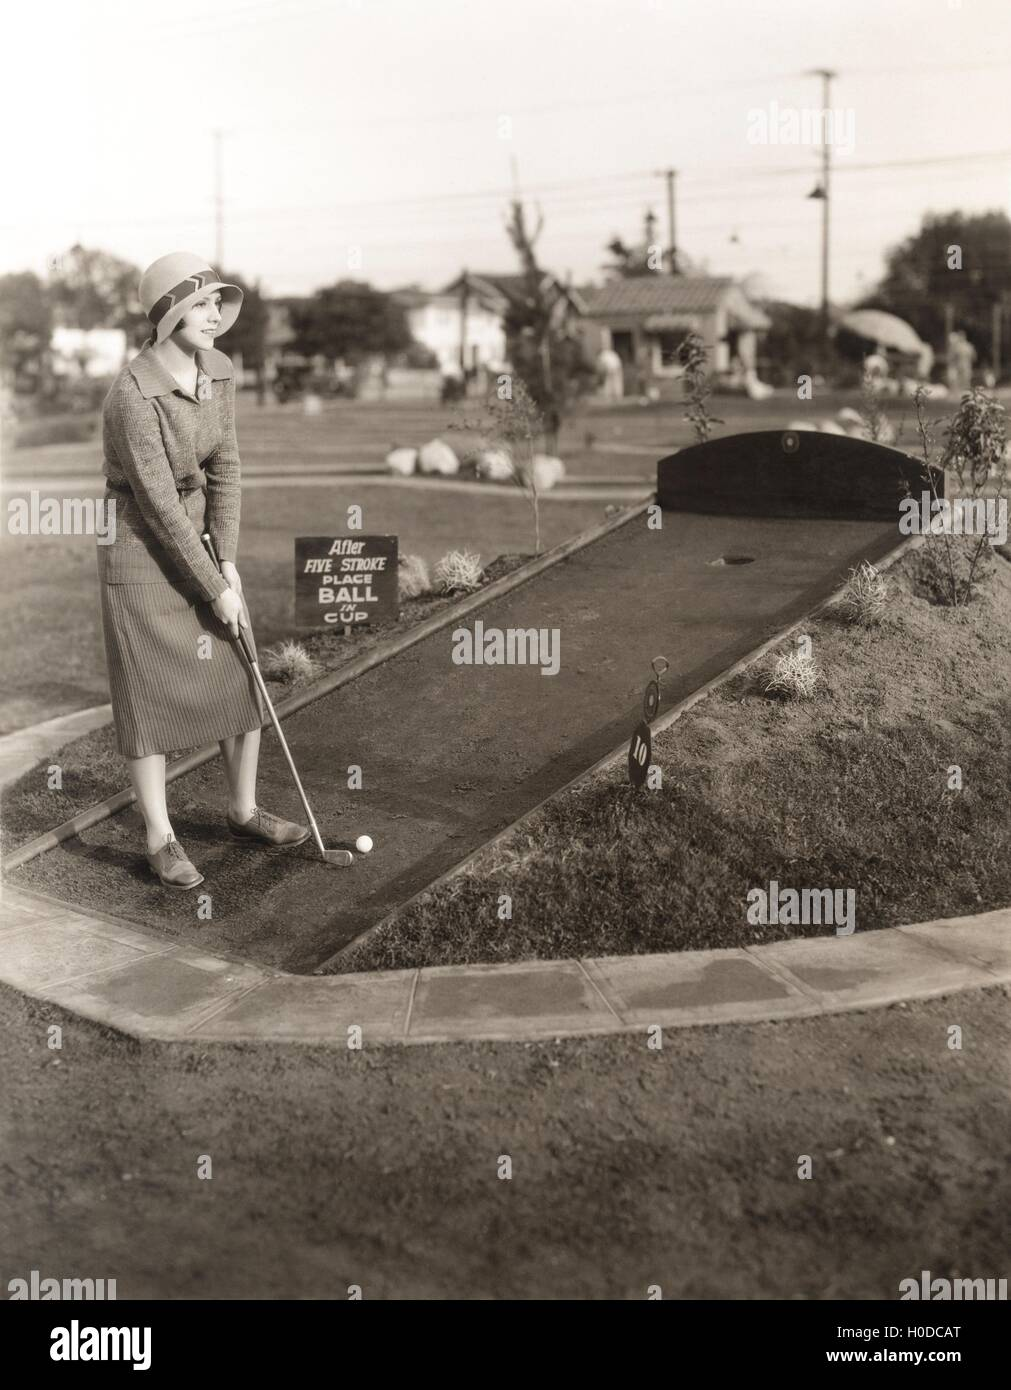 Enjoying a solo game of miniature golf - Stock Image